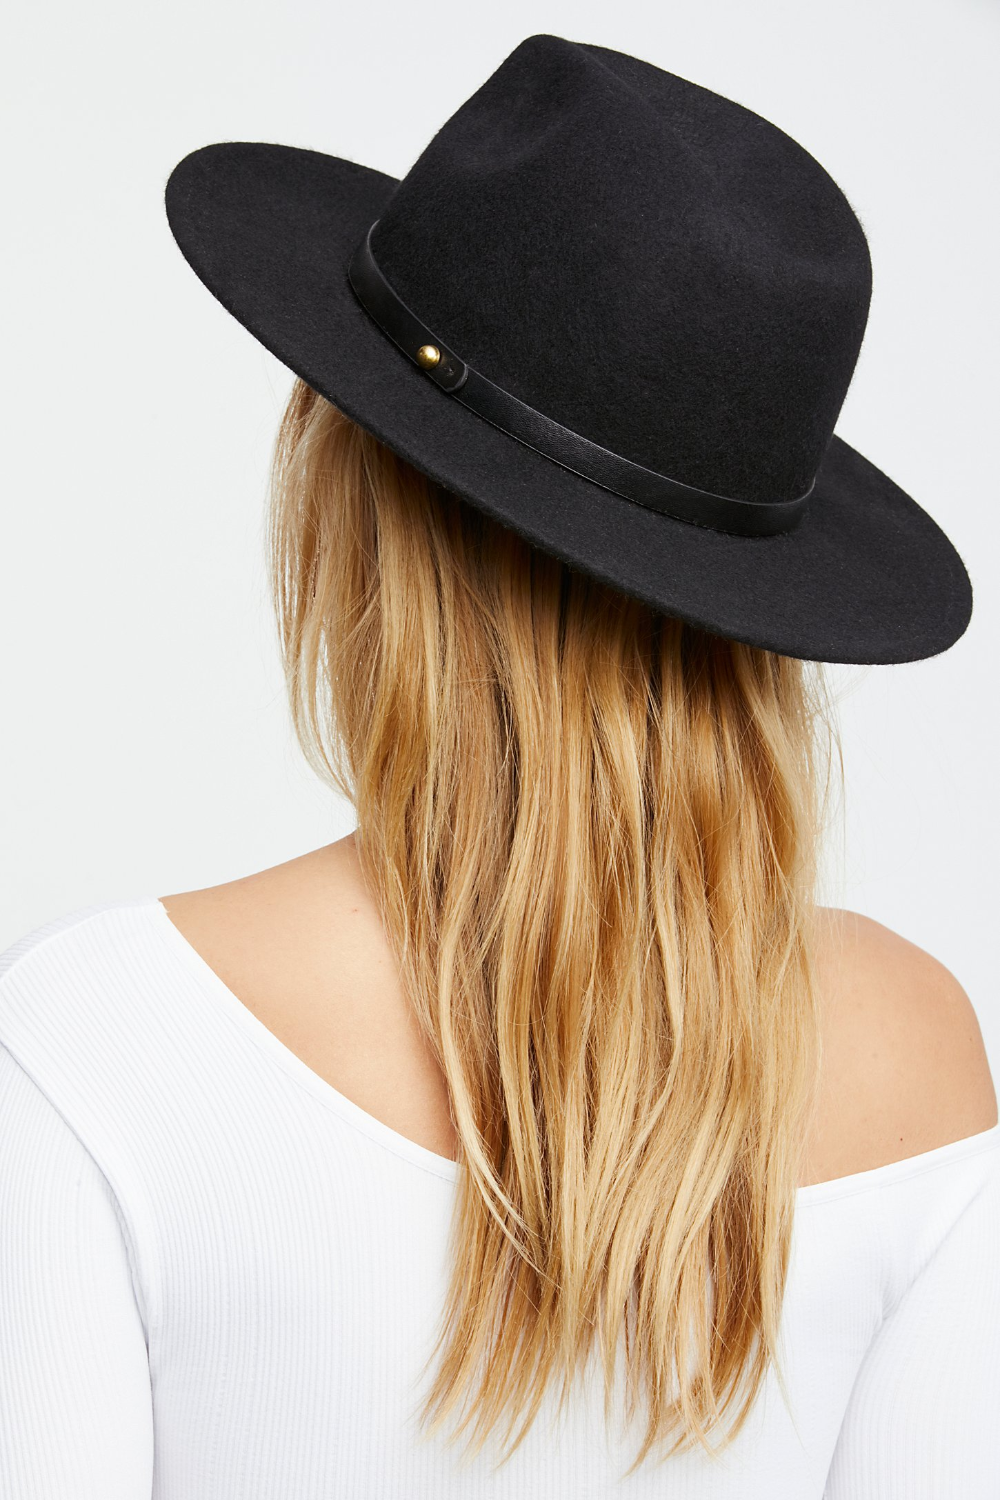 Wythe Leather Band Felt Hat In 2020 Women Hats Fashion Hats For Women Fashion Cap